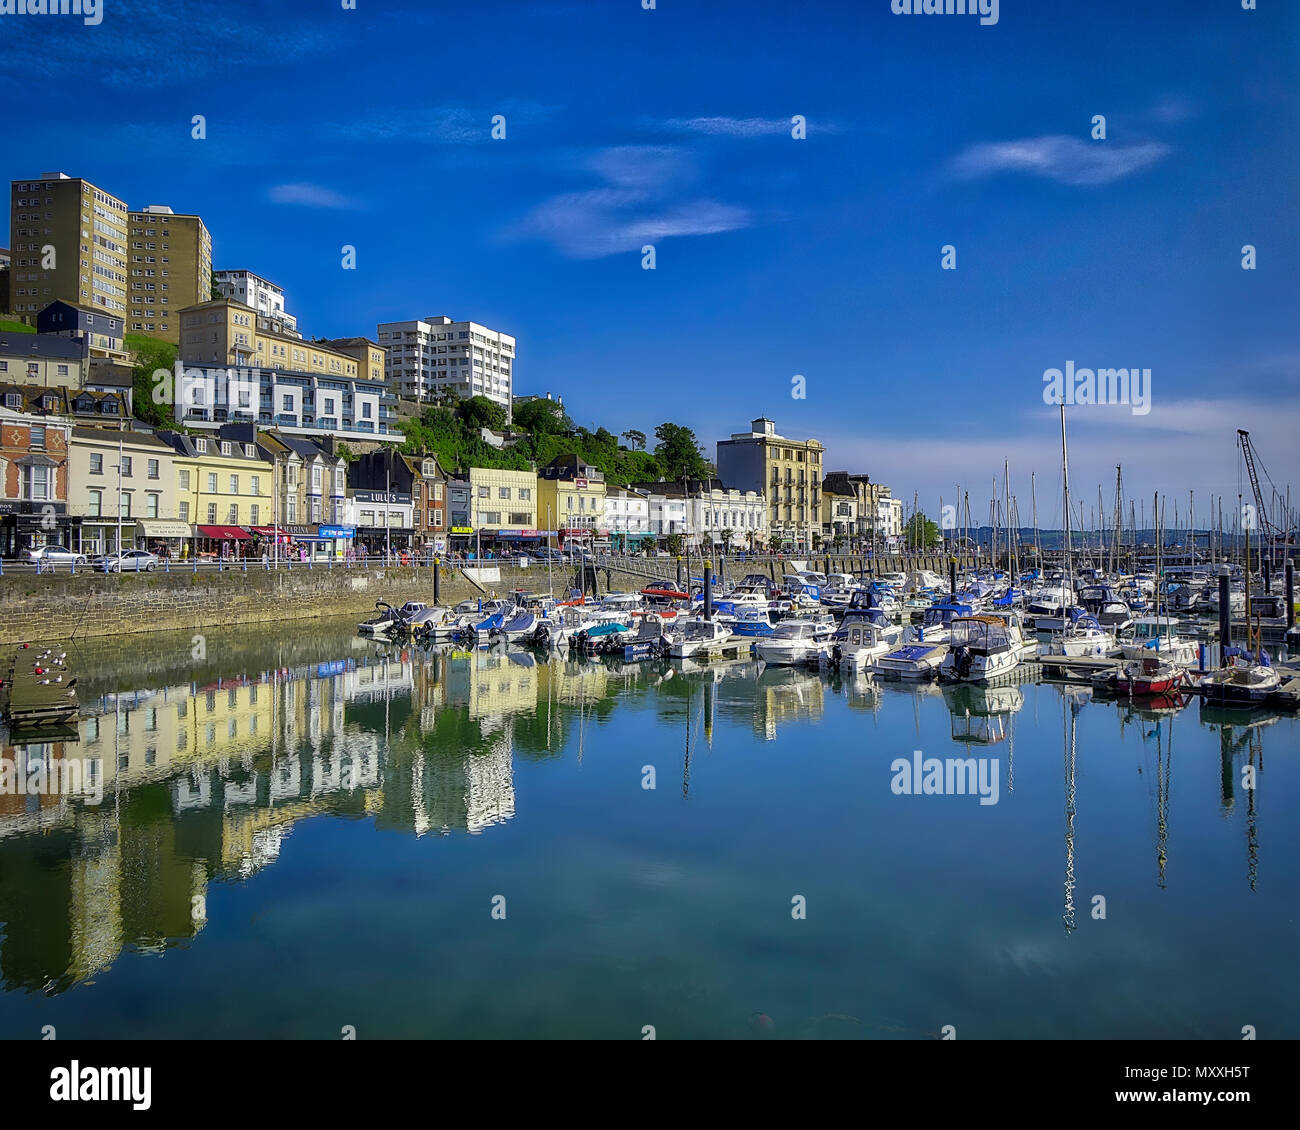 GB - DEVON: Torquay Harbour  (HDR Image) - Stock Image